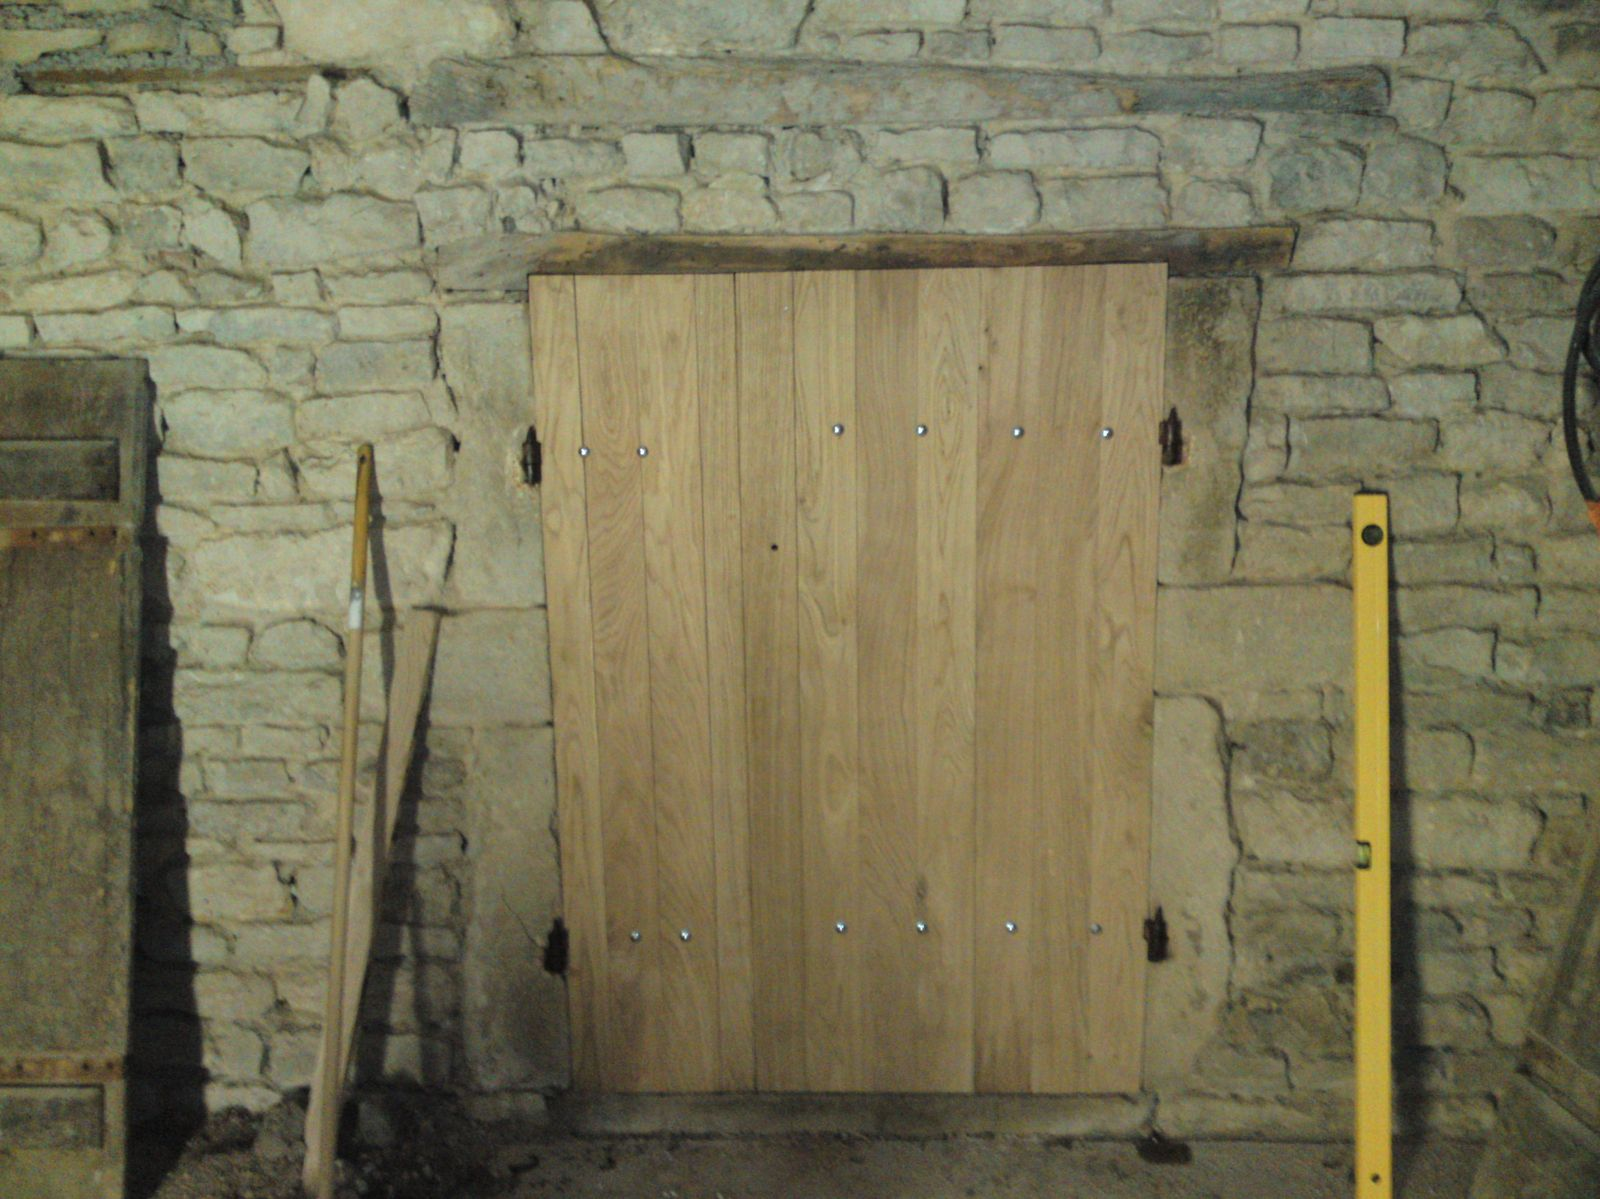 Porte cave renovation d 39 une fermette en bourgogne for Vieille porte de ferme